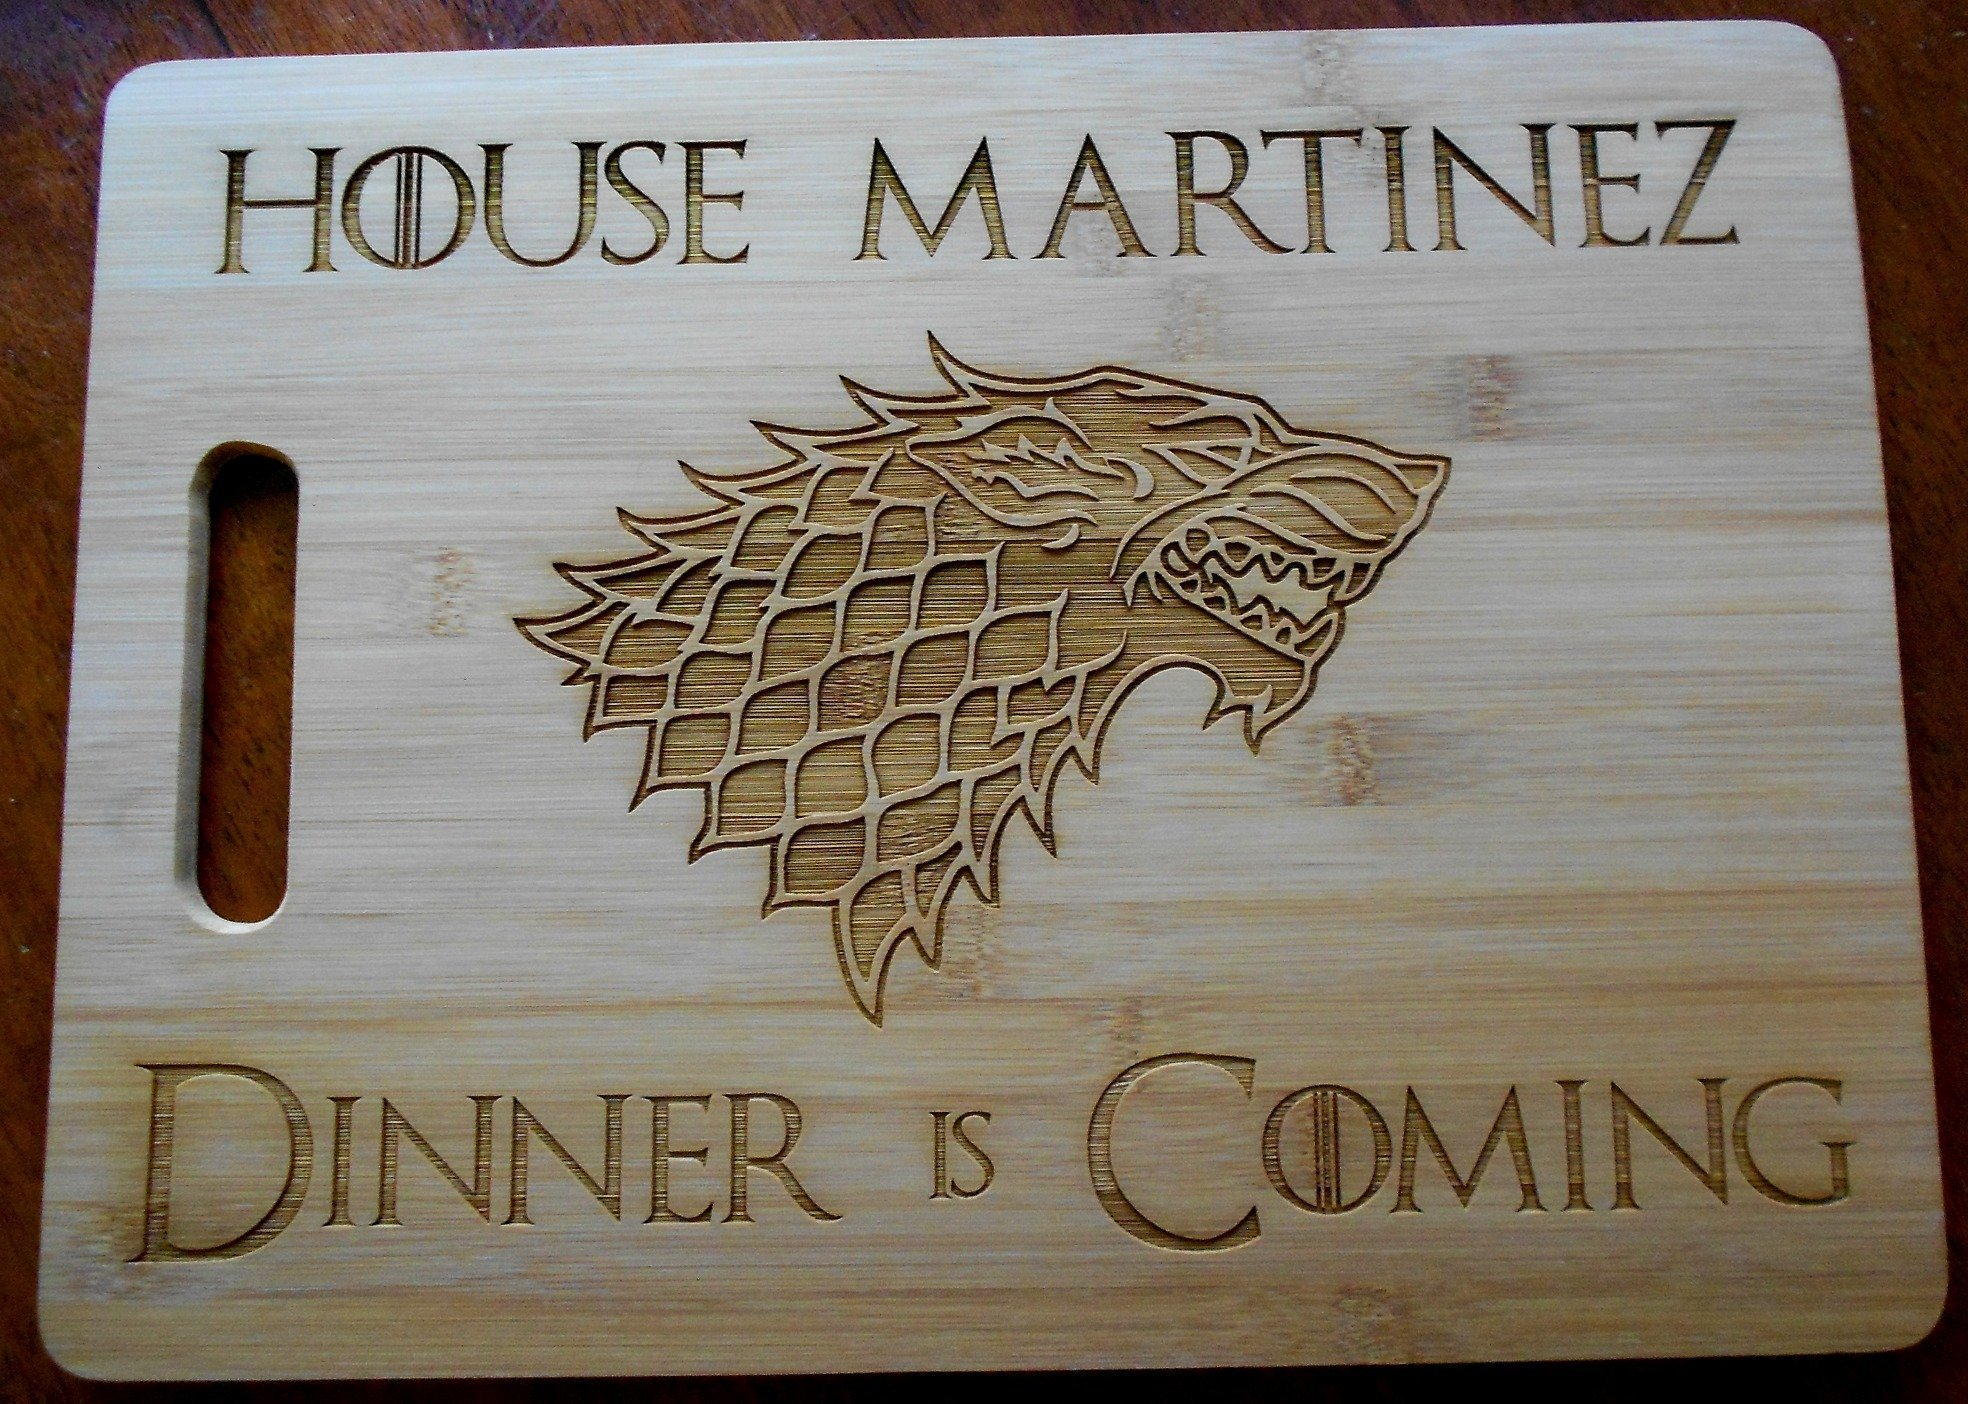 Game of Thrones Personalized Bamboo Cutting Board 11 by 15'' Large Board Laser Engraved with Name Dinner is Coming GOT